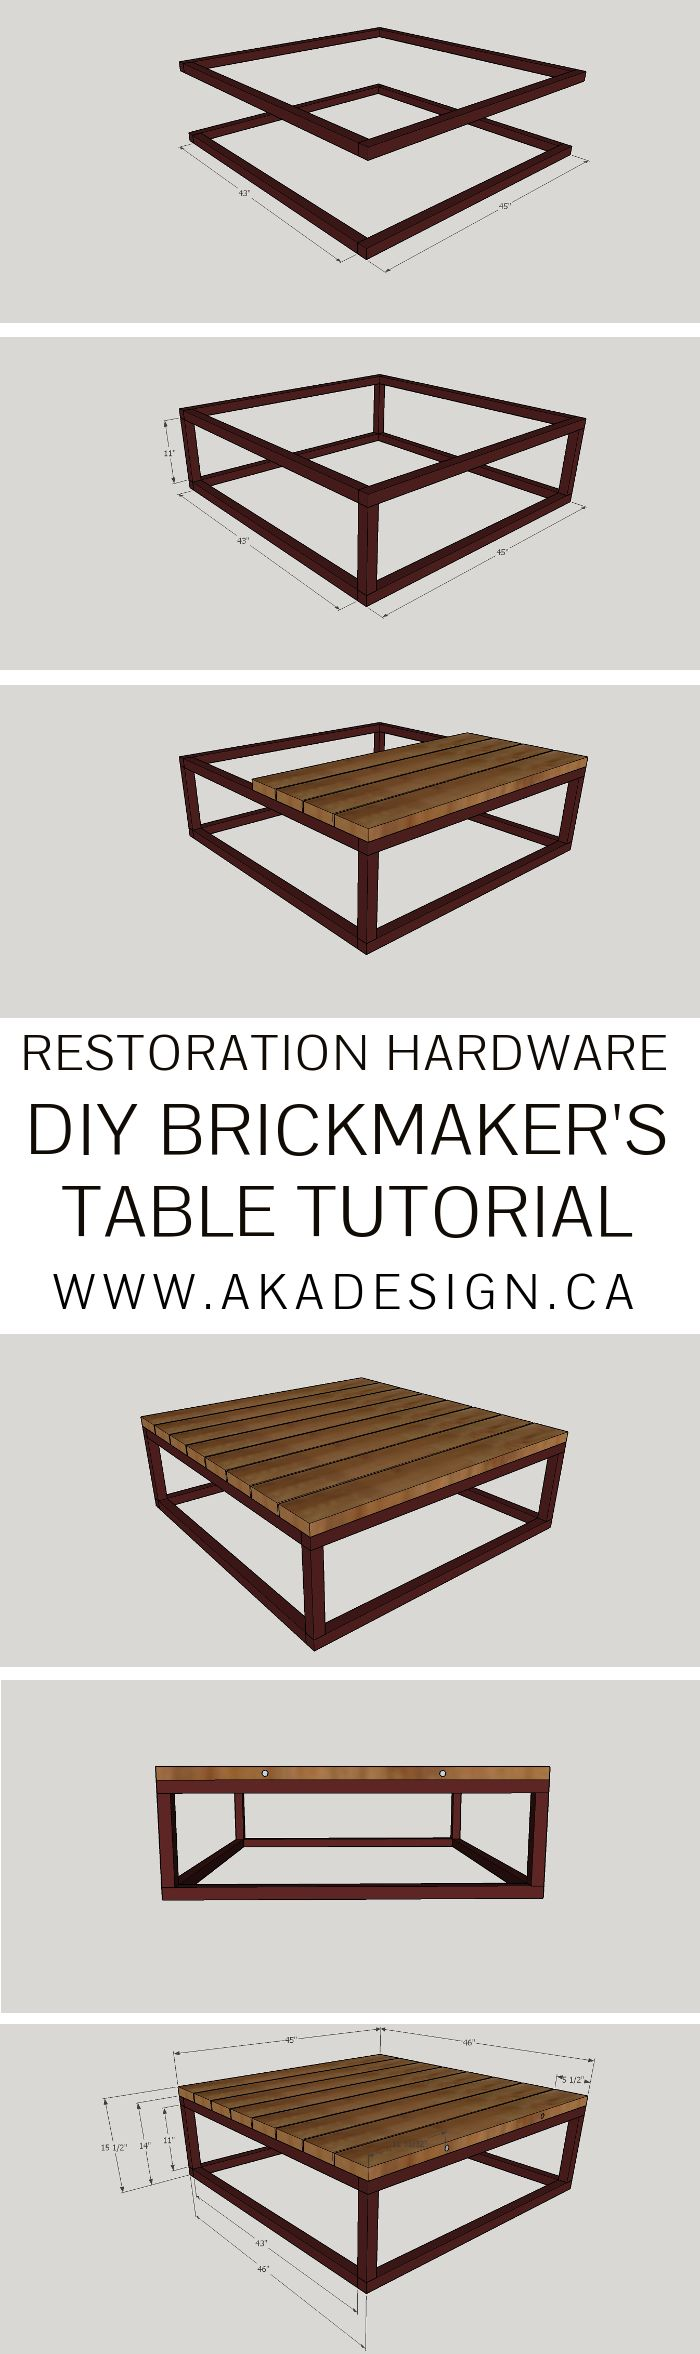 DIY Wood Working Projects: DIY Brickmaker's Coffee Table